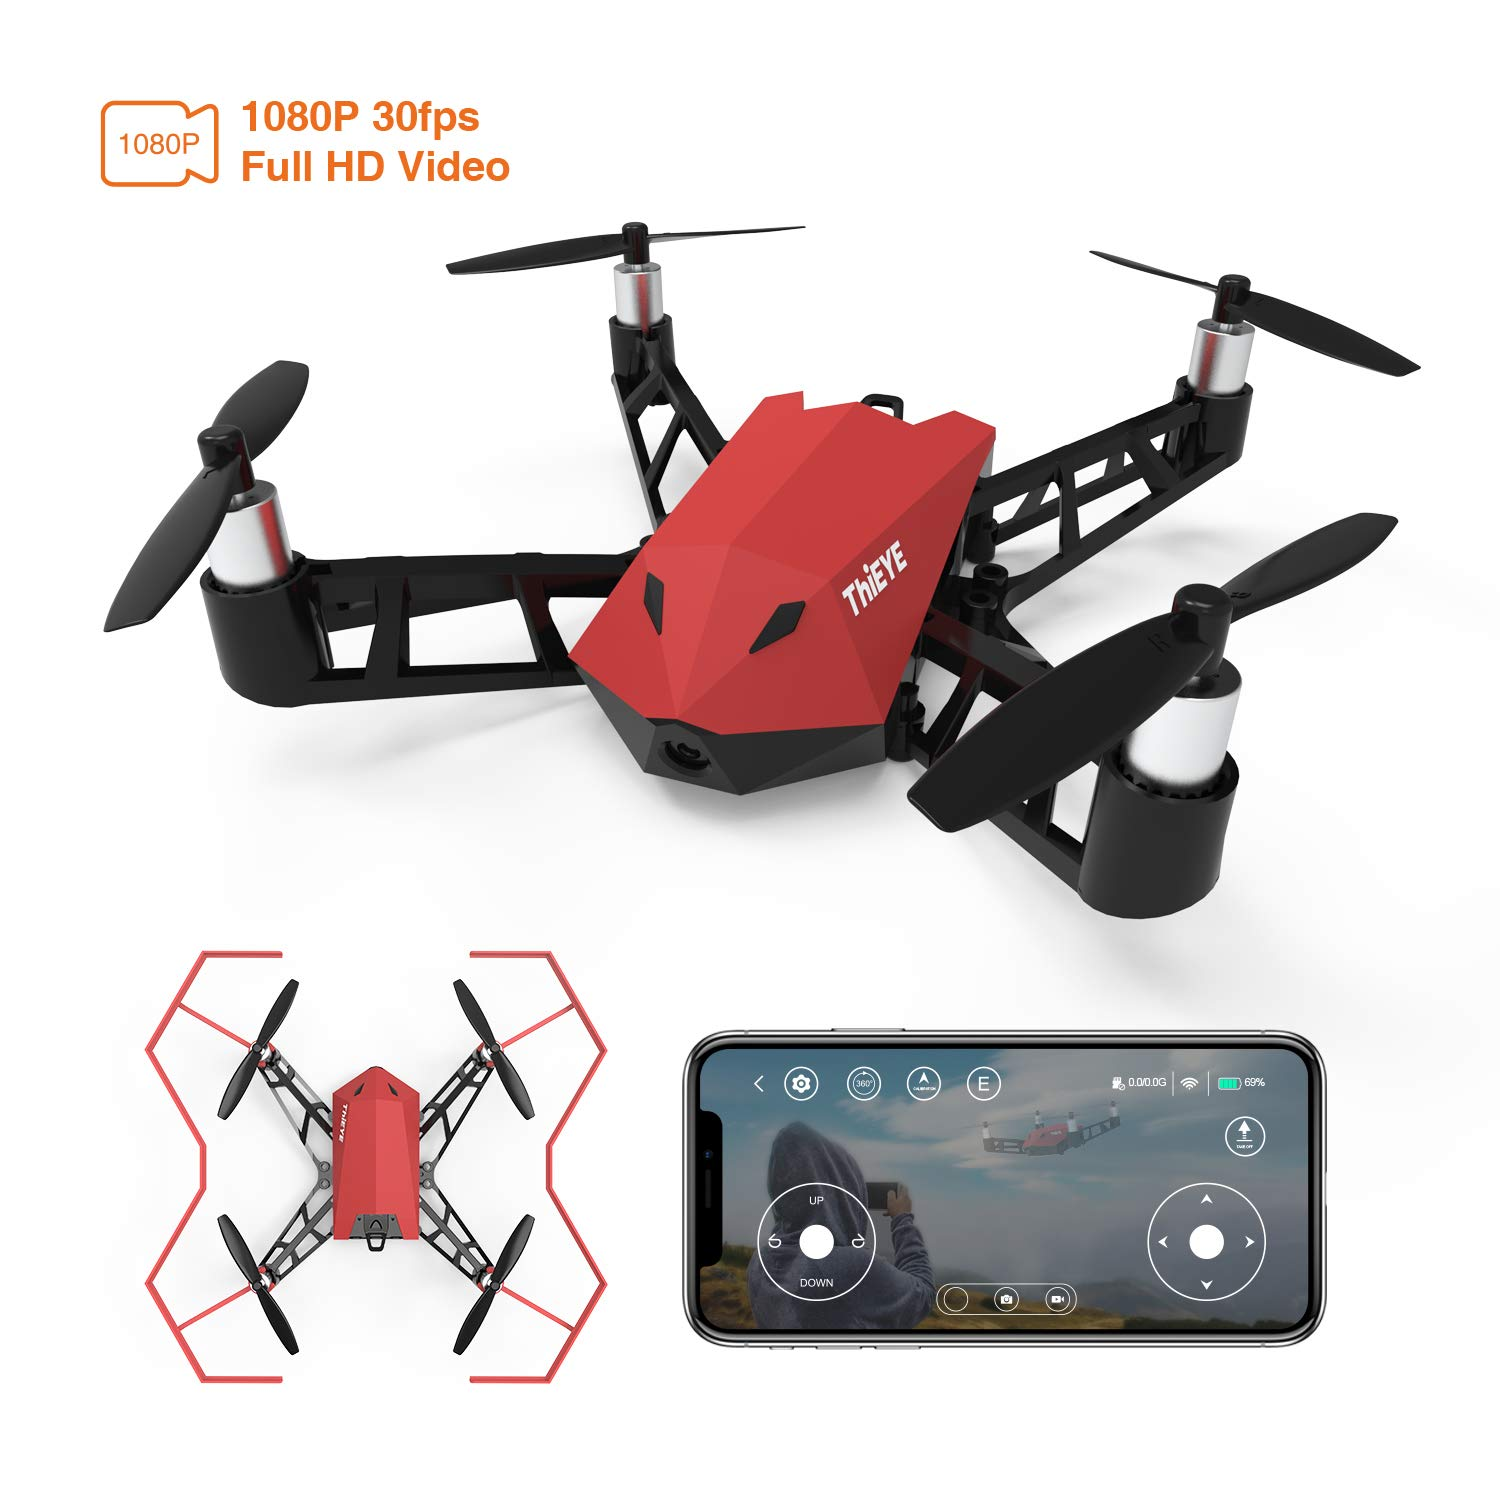 Quadcopter Drone with 1080P Camera, THiEYE Dr.X Full HD RC Drones with 2.4G WiFi APP Control, One Key Take Off/Landing, Failsafe Protection for Kids and Beginners